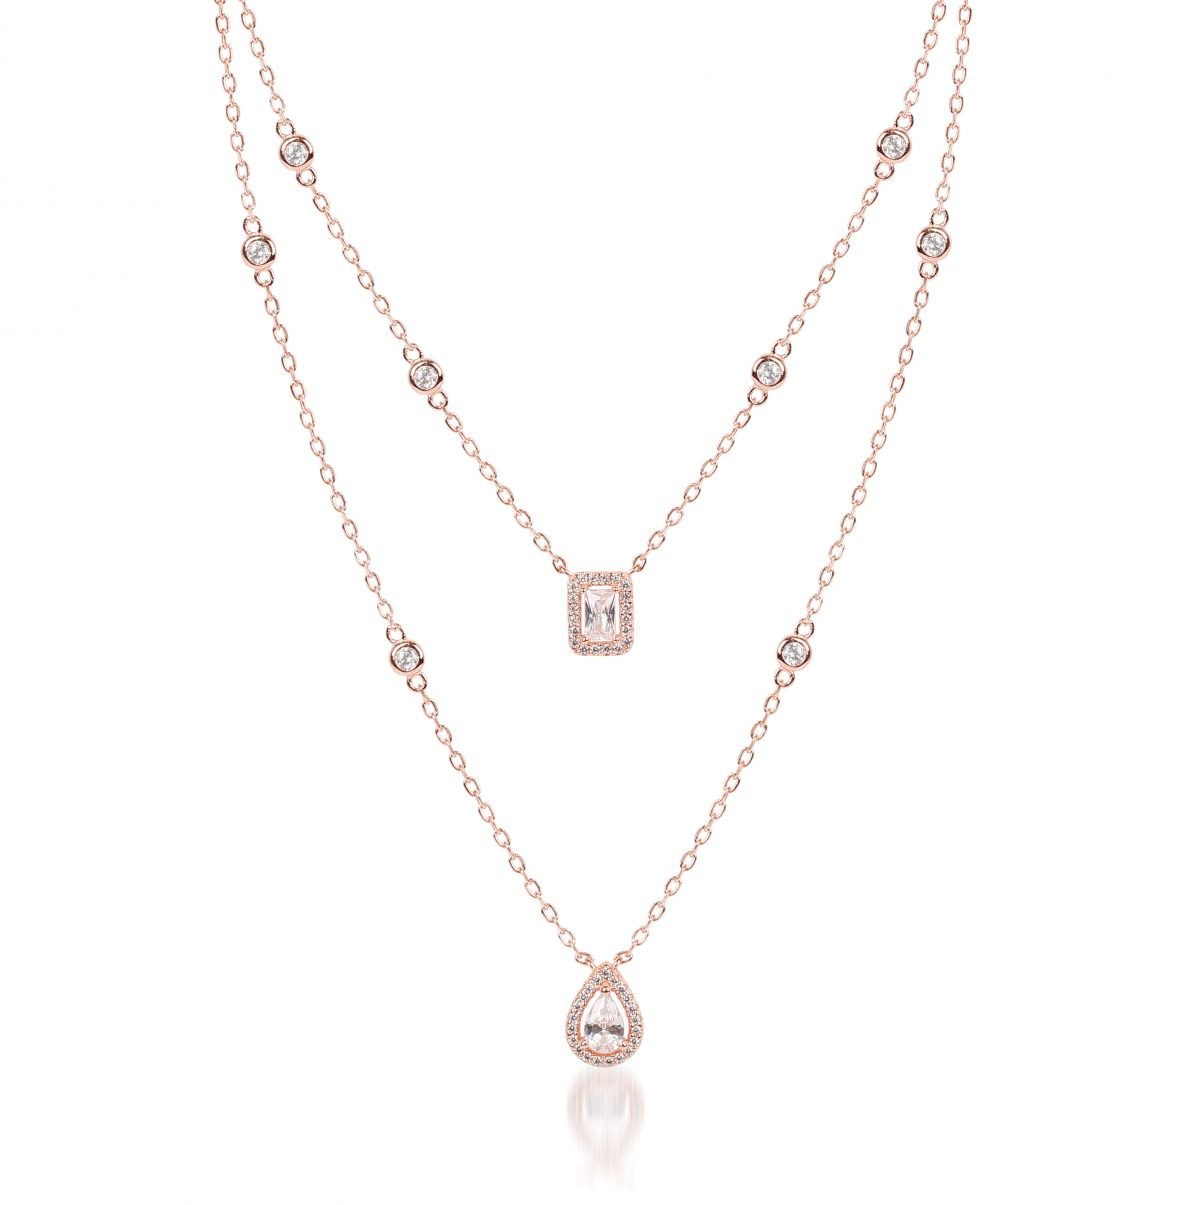 Weald Rose Necklace - High Street Jewelry